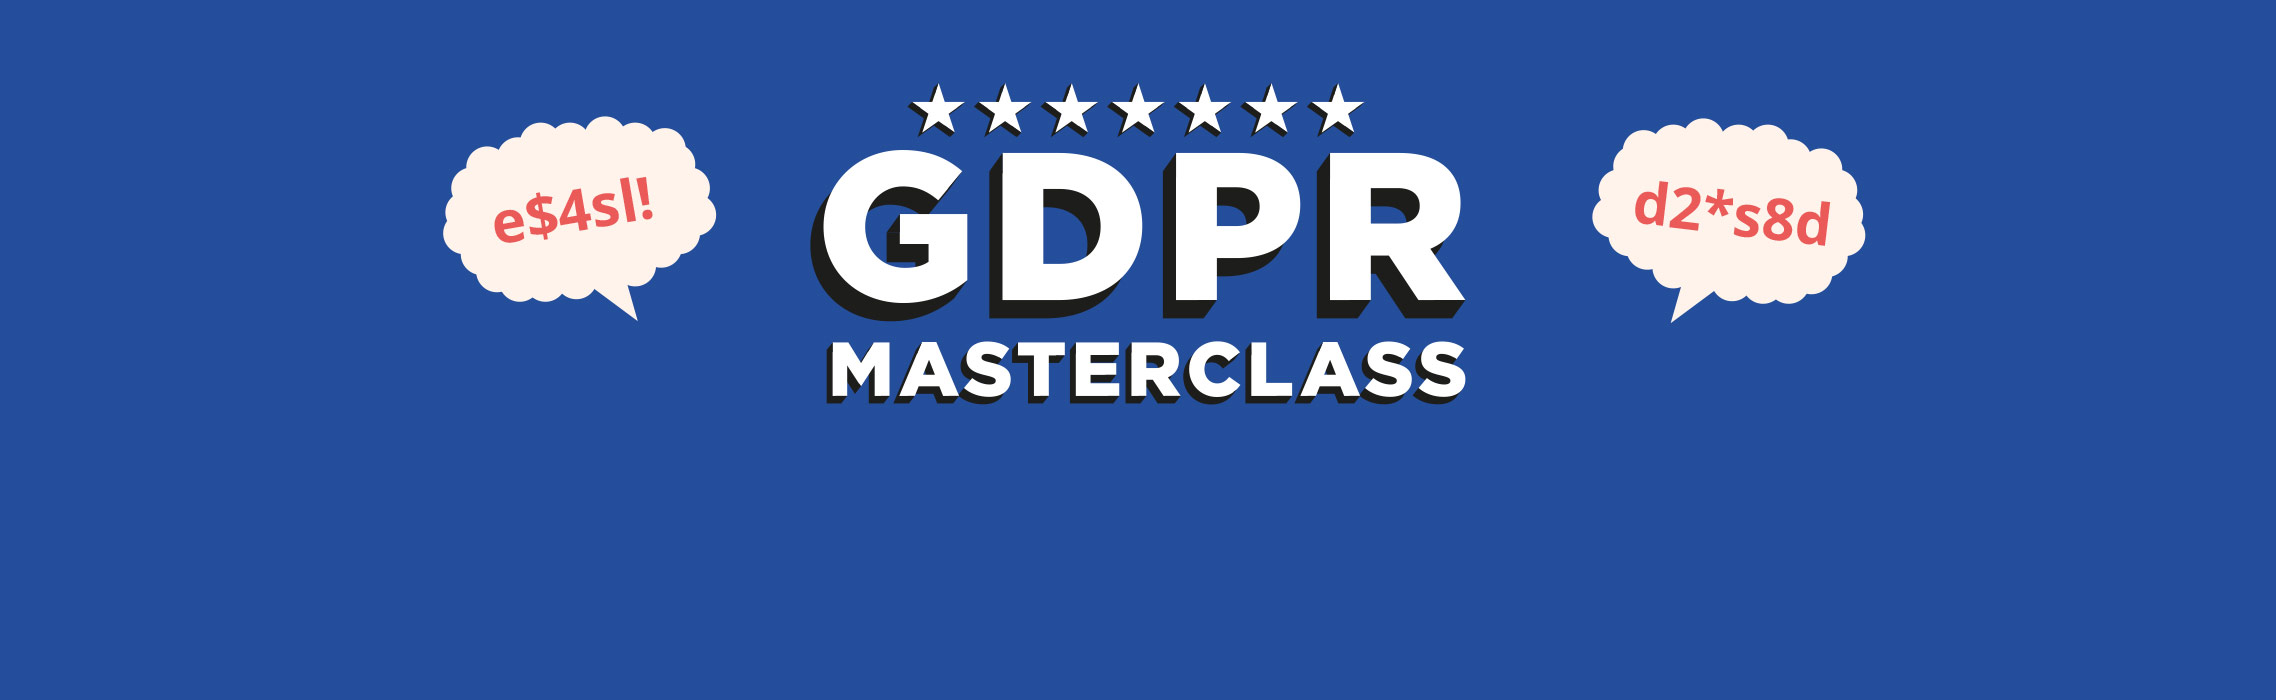 What Is GDPR and What Does It Mean? The Small Business GDPR Jargon Buster | instantprint